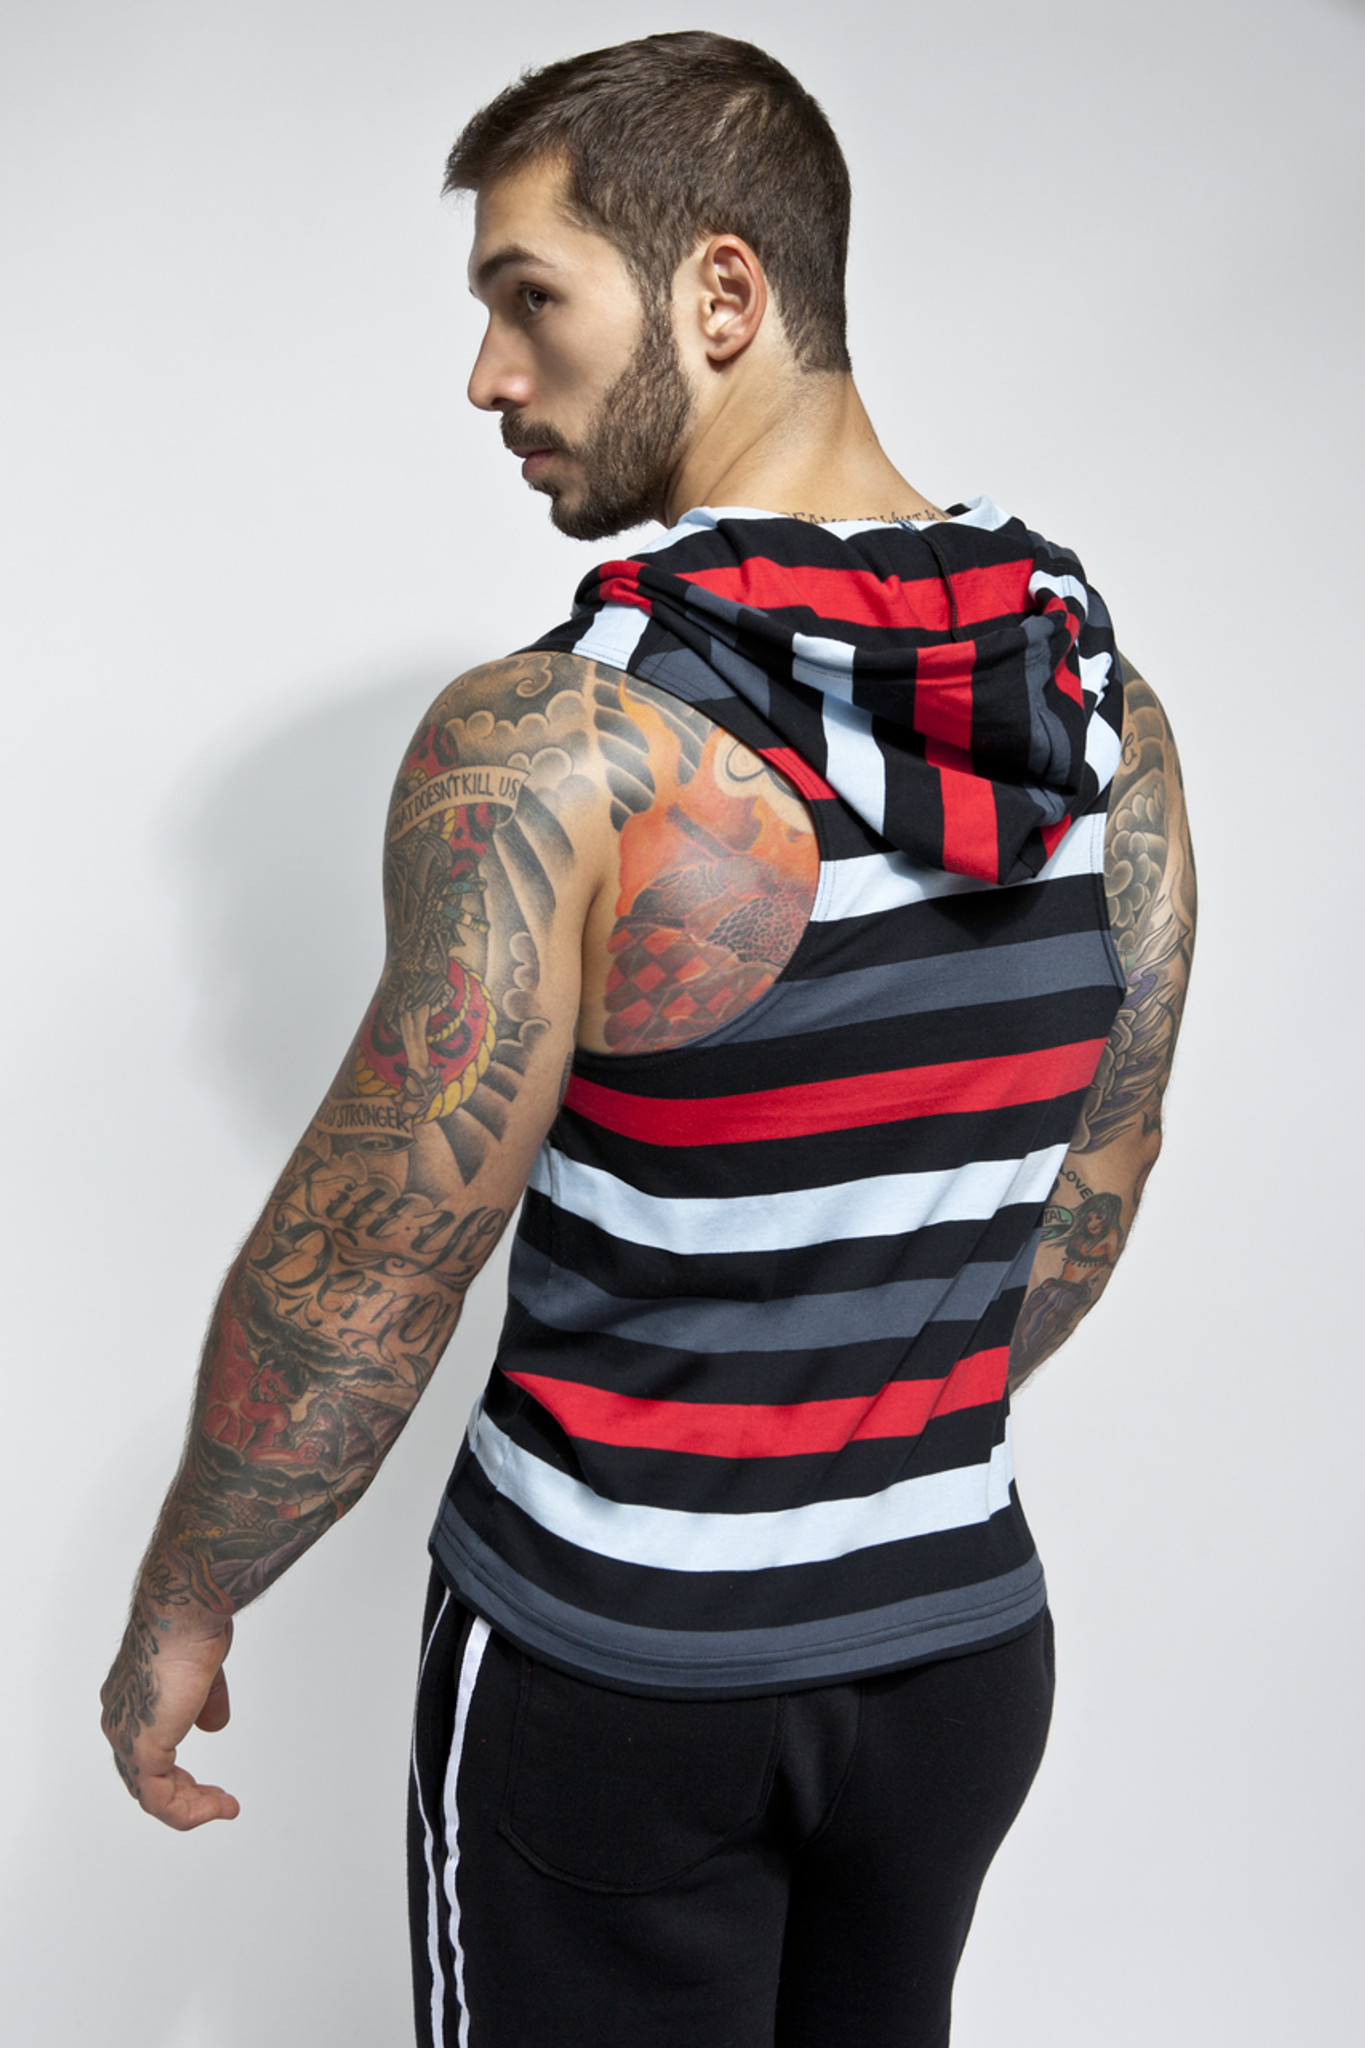 Bridgetown Zip Up Sleeveless Hoodie - Rear view